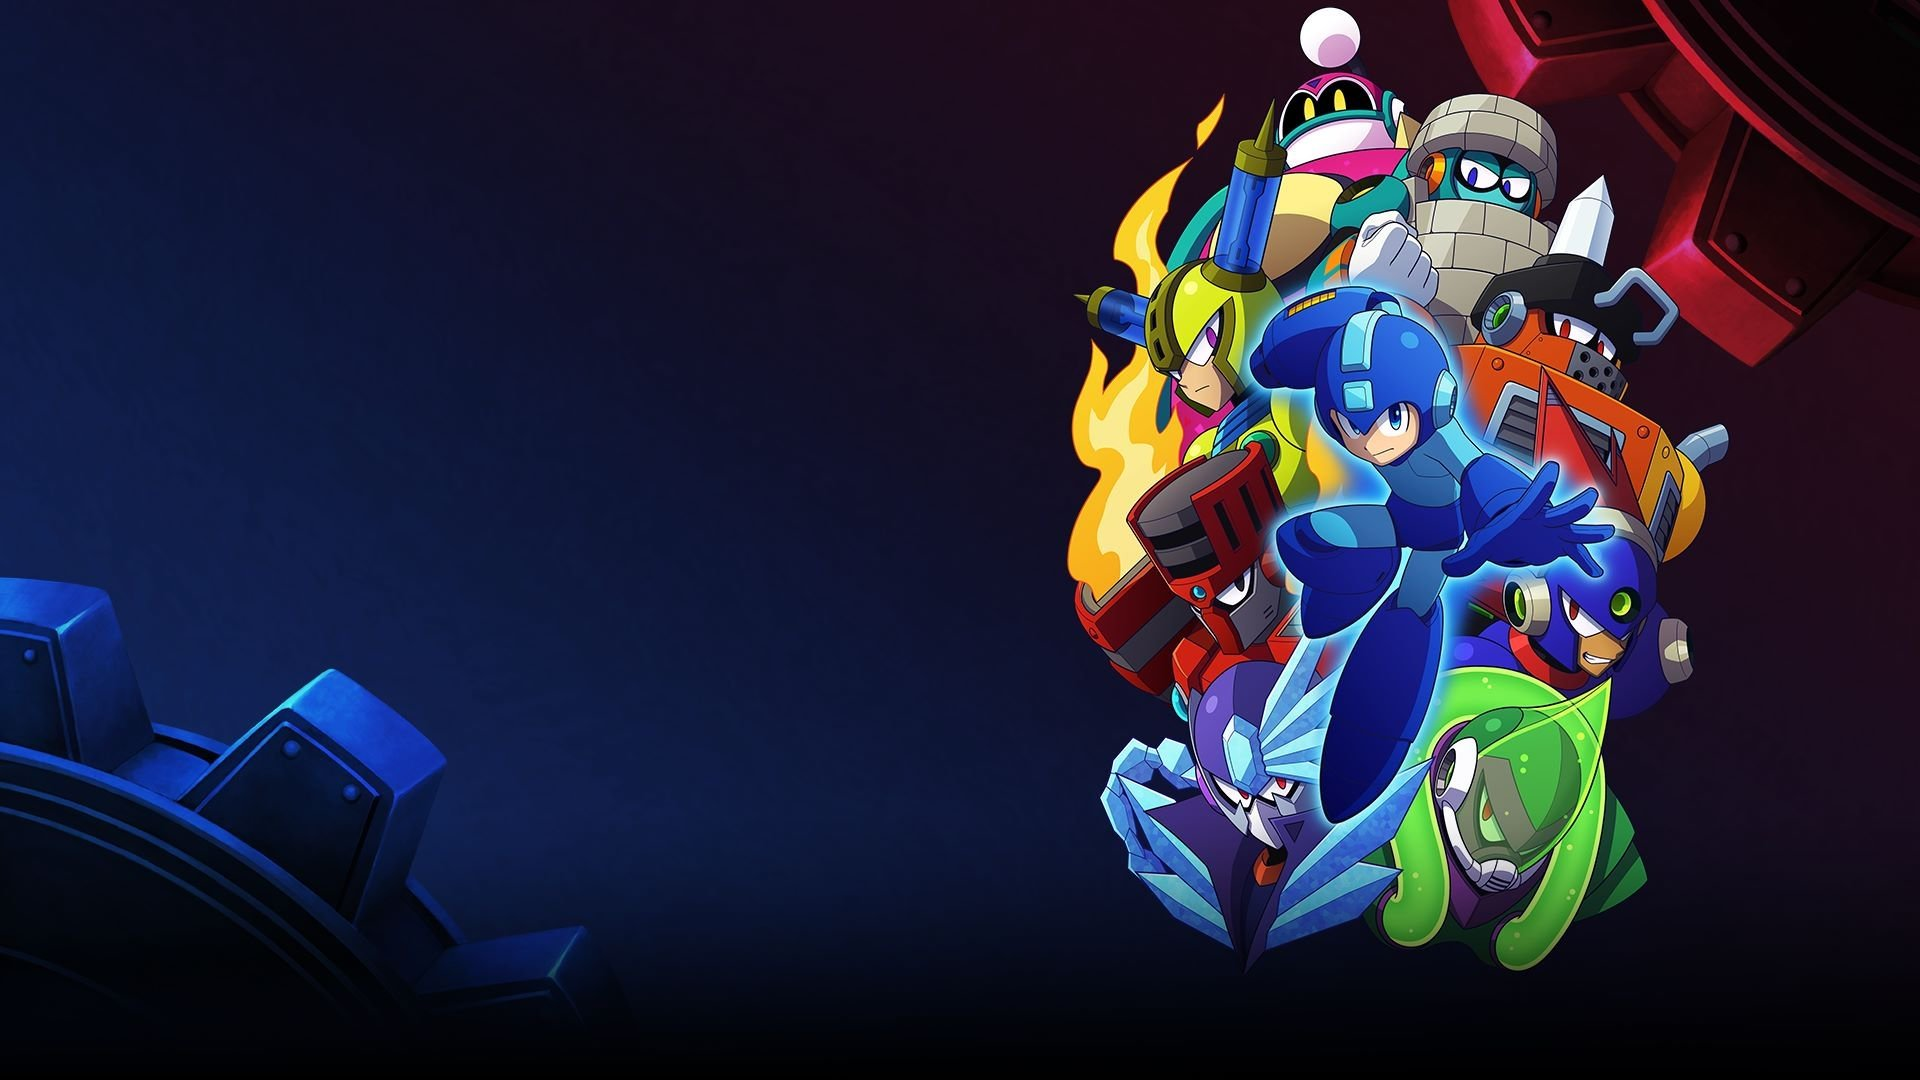 10 Mega Man 11 HD Wallpapers